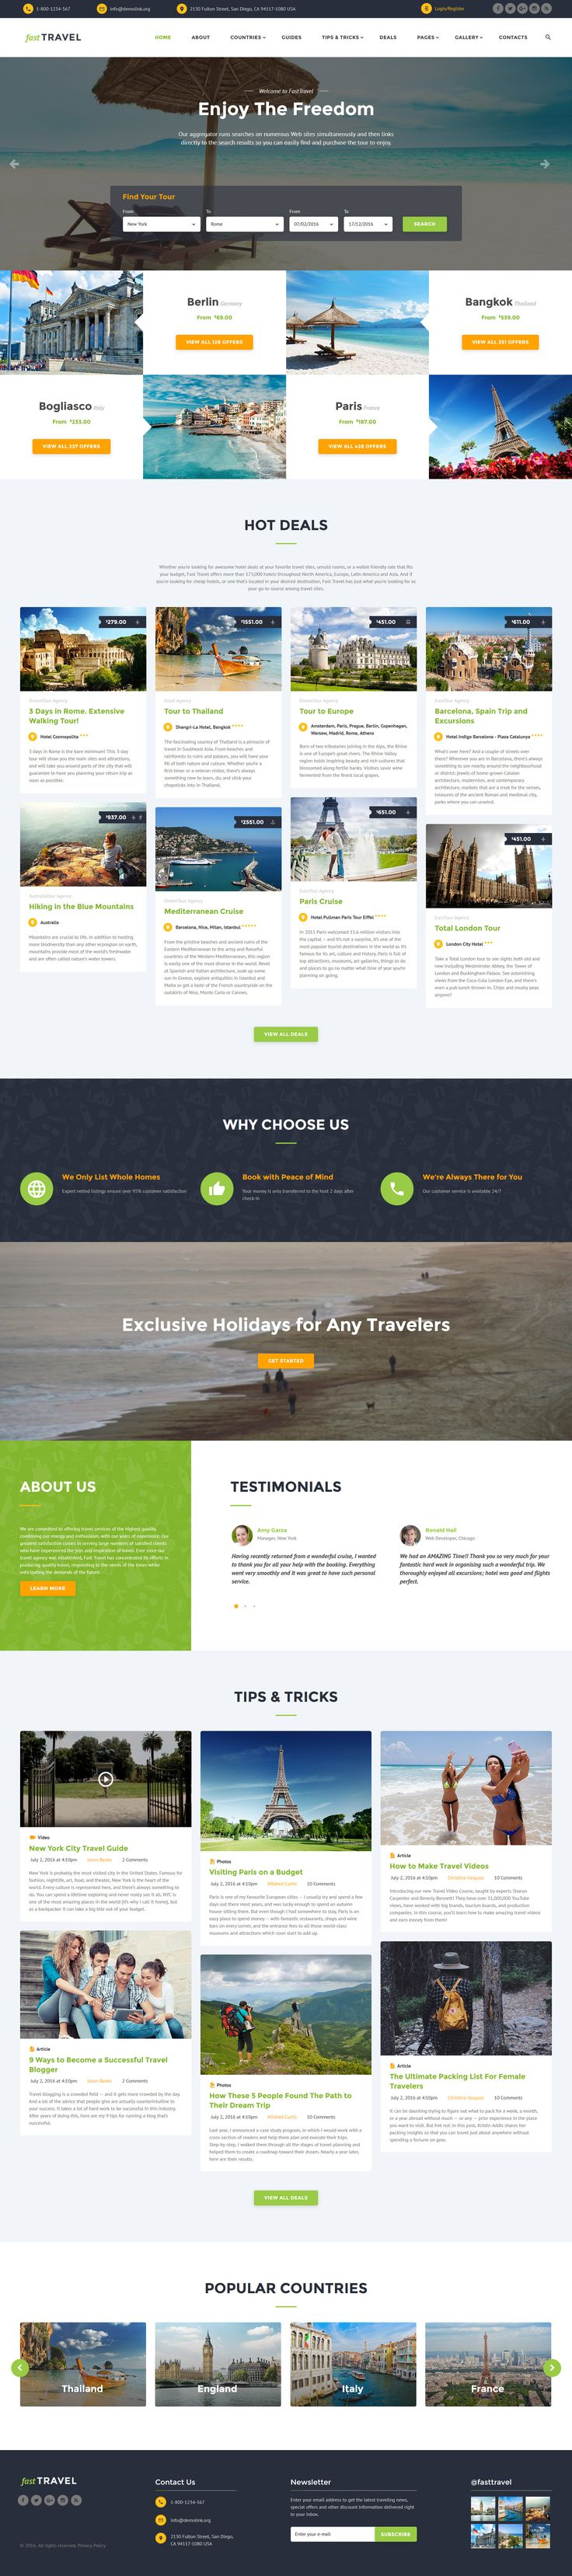 Travel Agency Responsive Website Template http://www.templatemonster.com/website-templates/travel-agency-responsive-website-template-60026.html